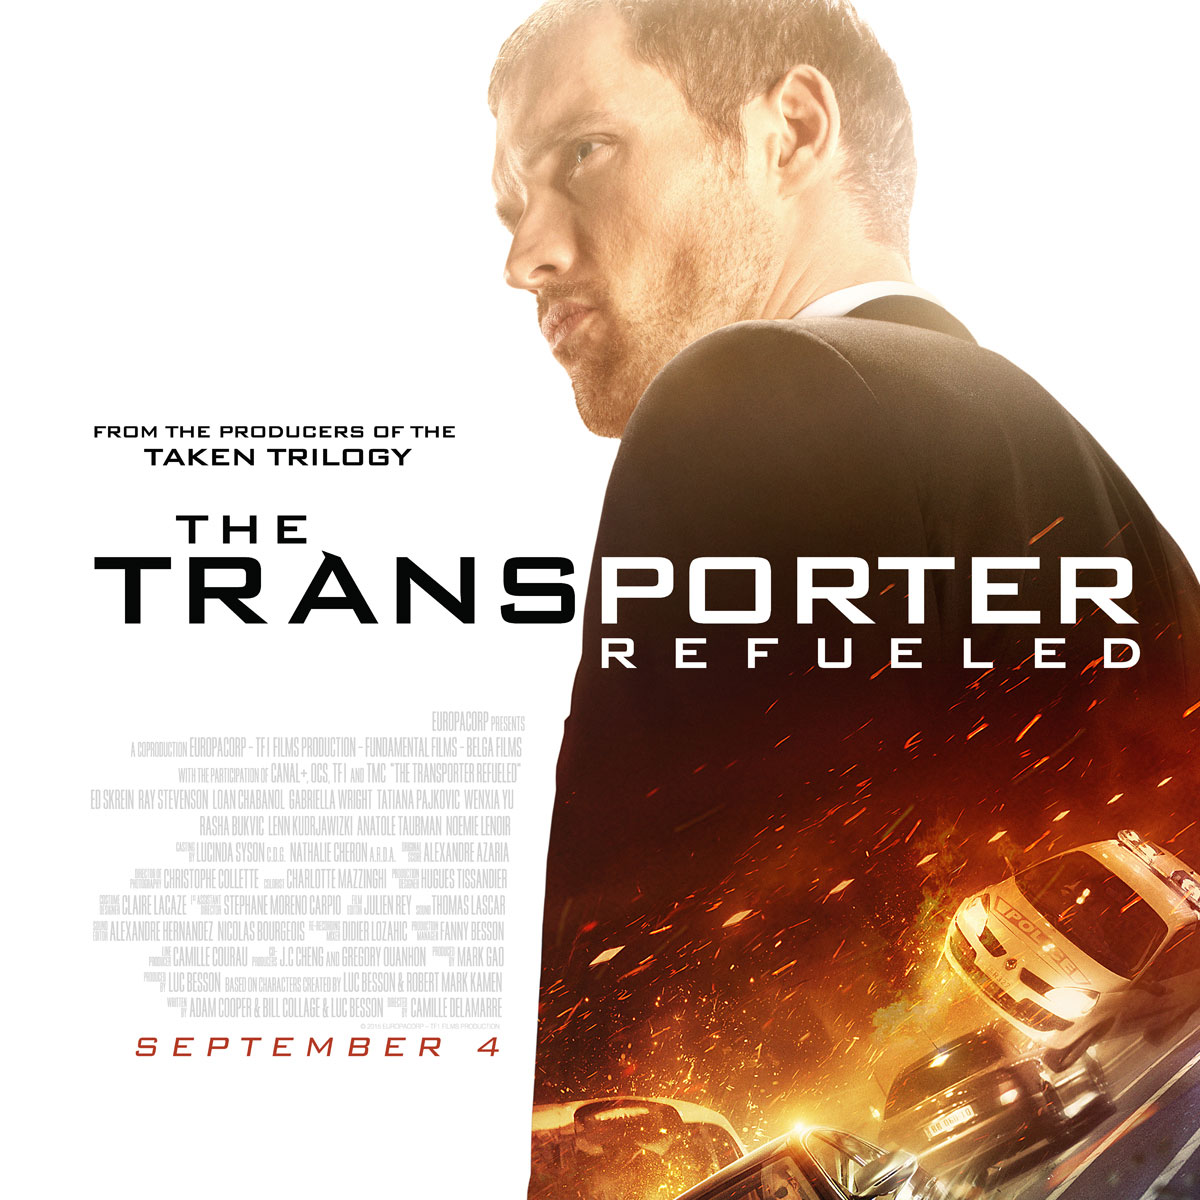 Transporter Refueled Featured Image